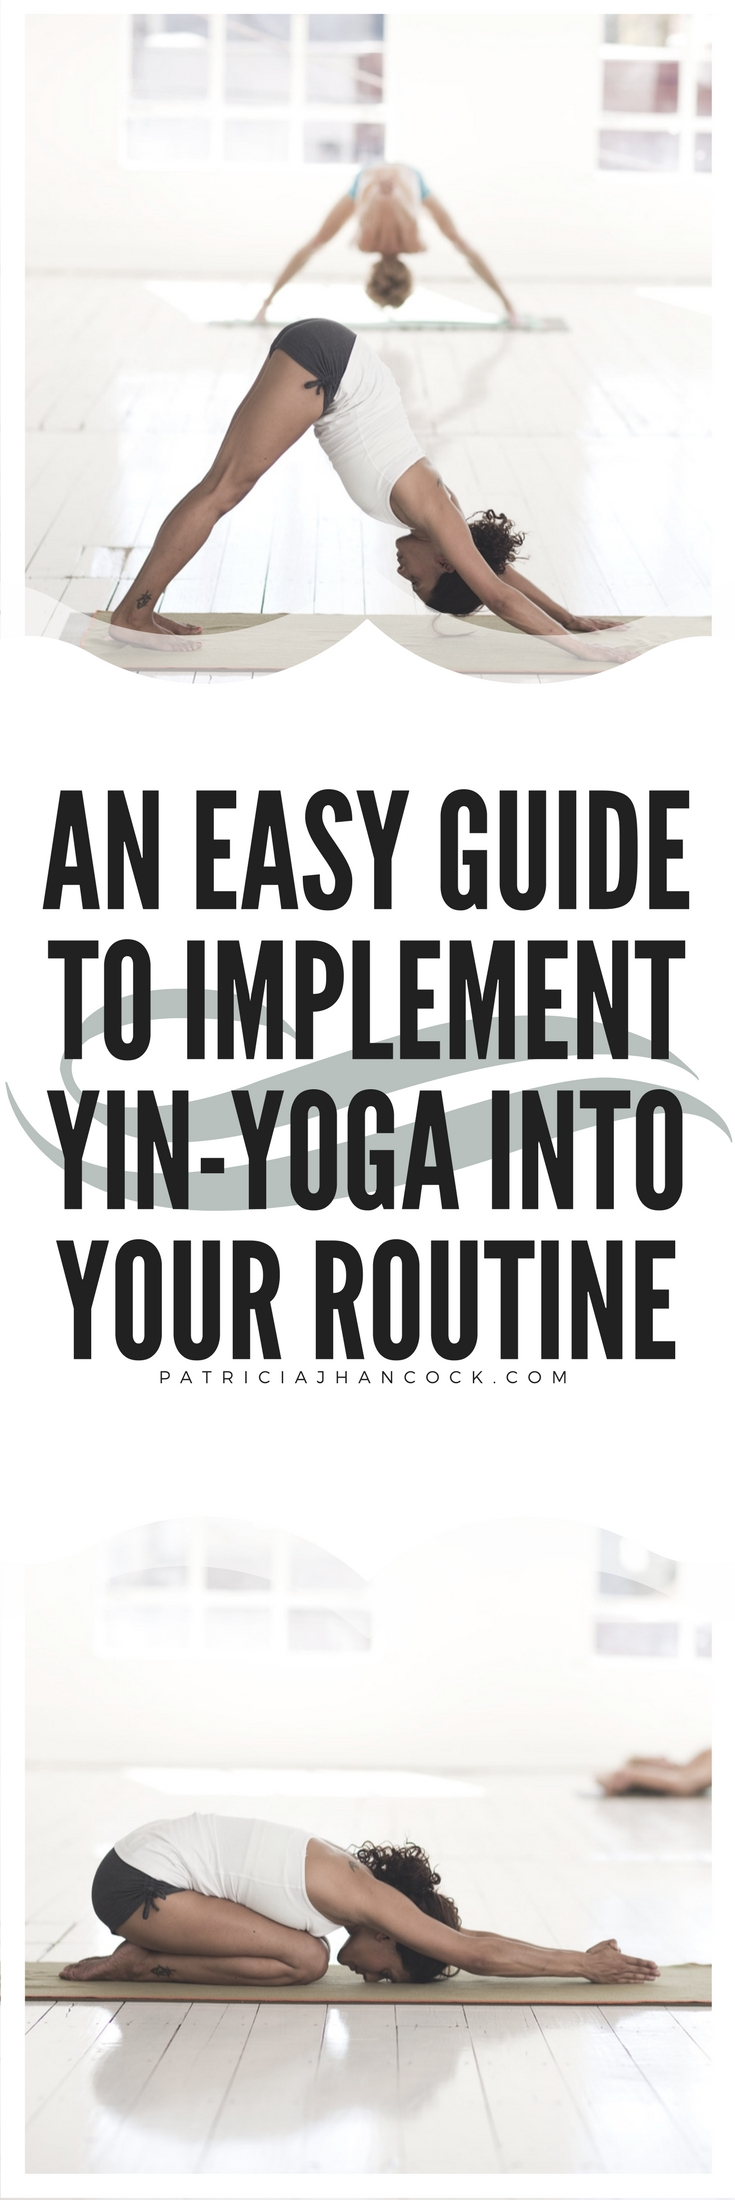 Don't have bodywork in your self-care routine? Are you looking for a low impact way to start taking care of your physical well-being alongside your mental well-being? Look no further! Yin Yoga is the perfect way to incorporate a slow, mindful bodywork into any self-care routine!